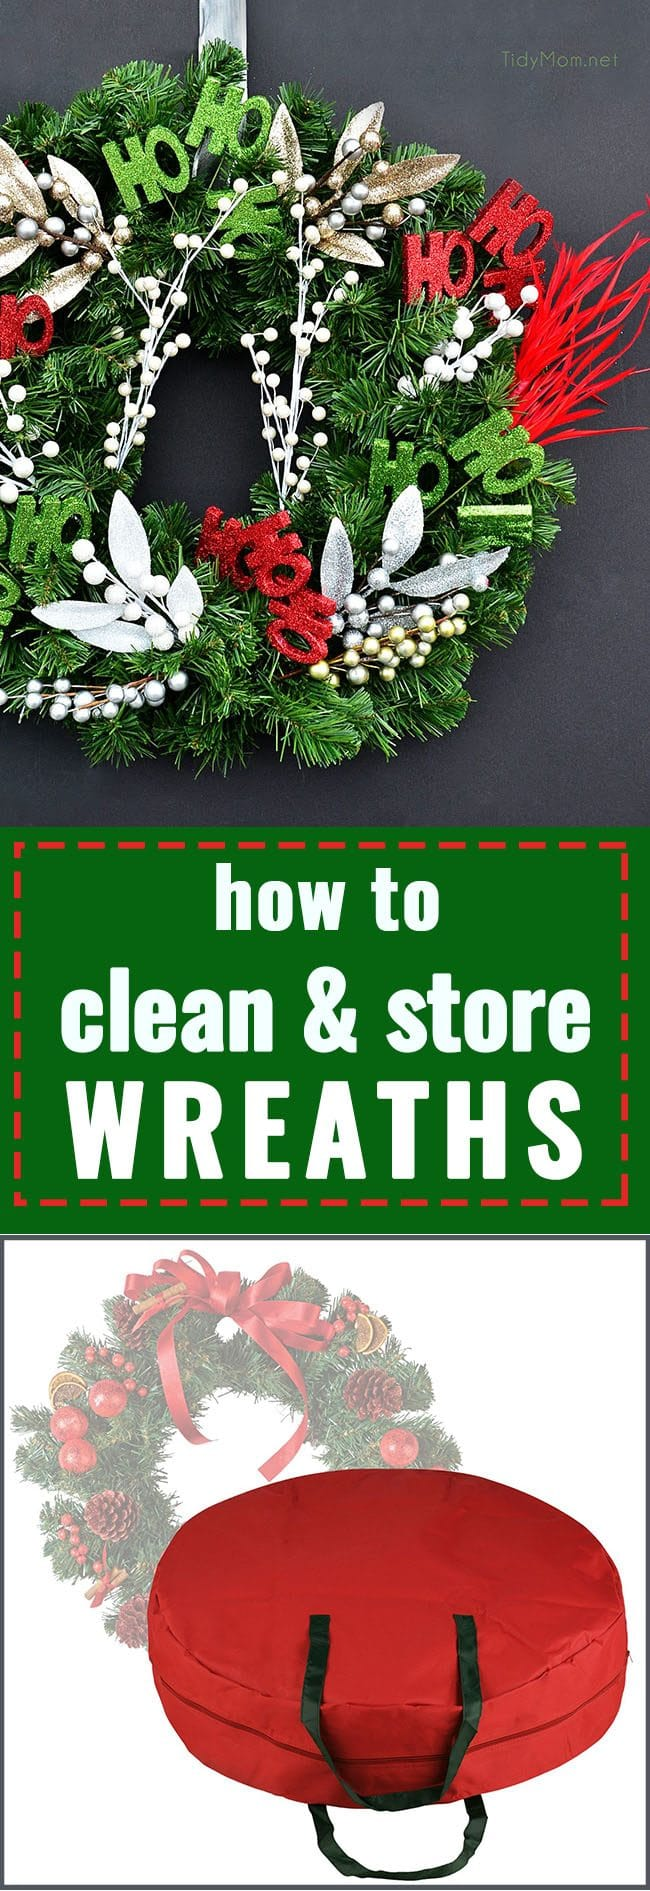 How to Clean & Store Wreaths